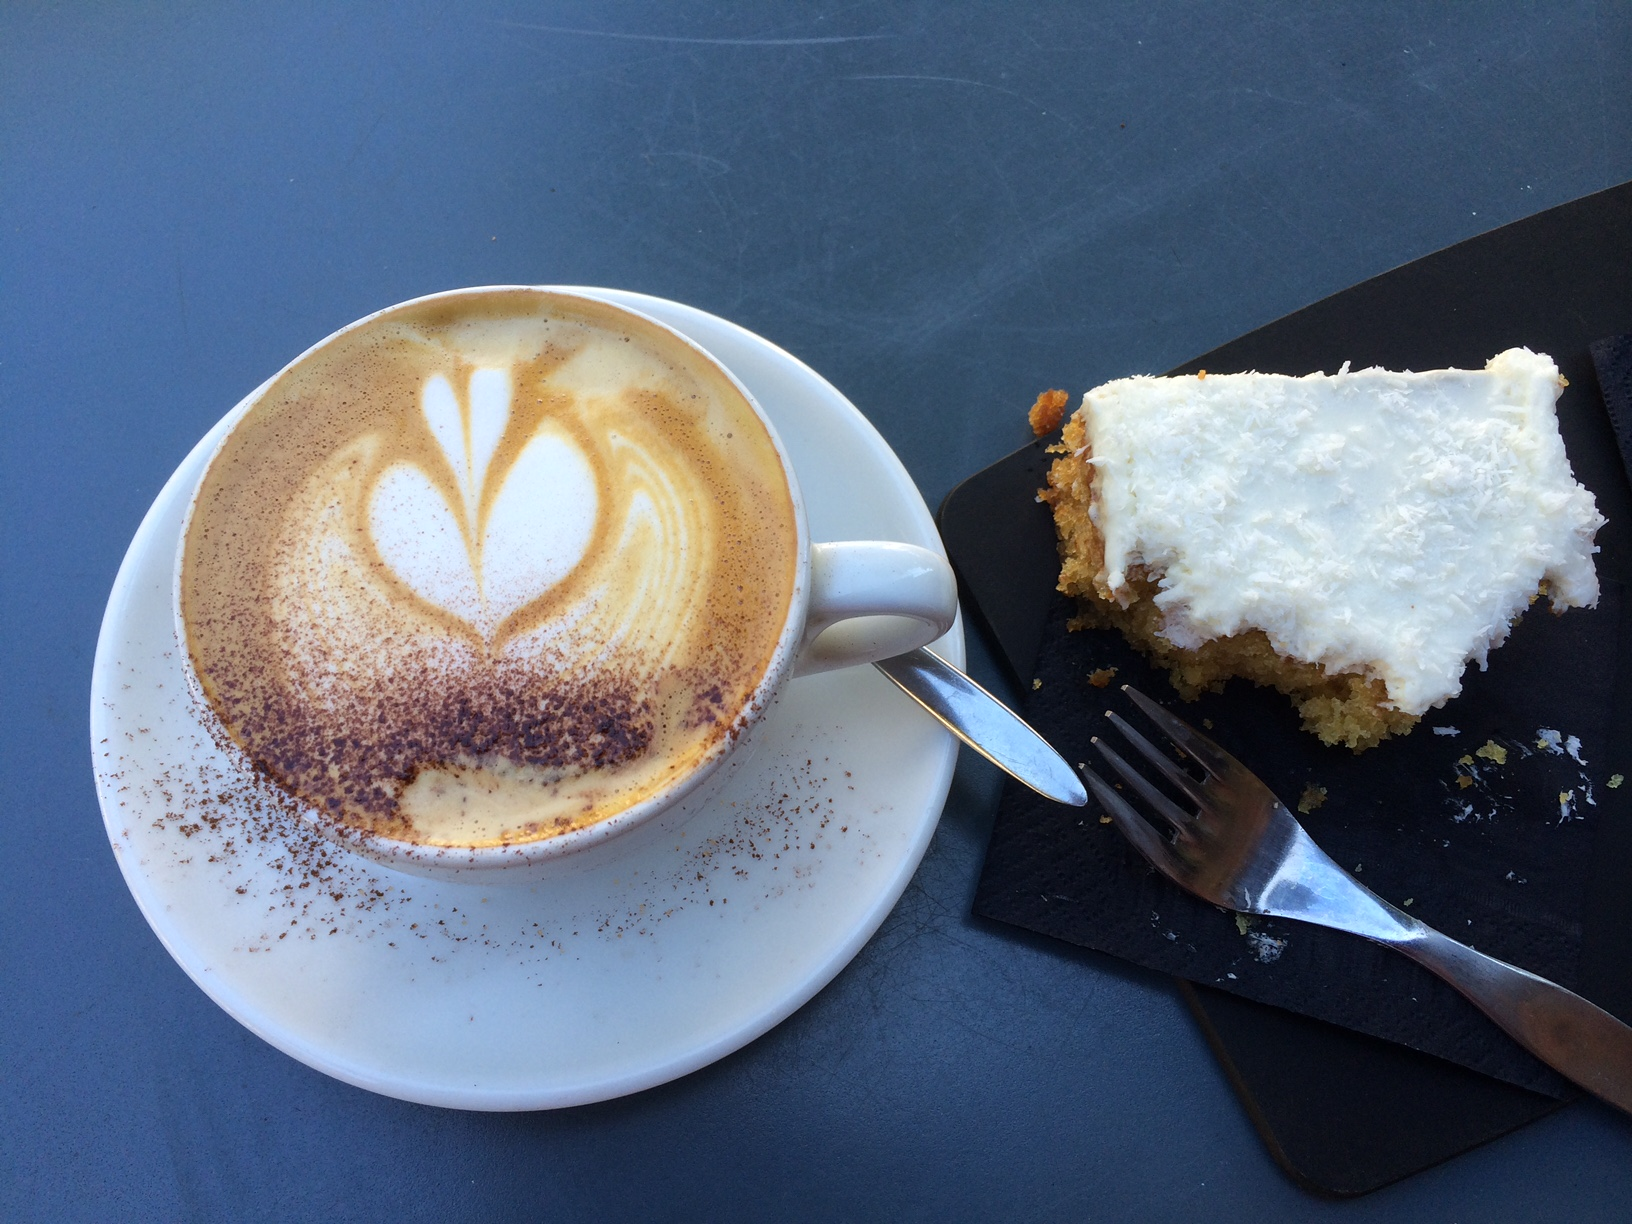 Coffee and cake at an outdoor cafe